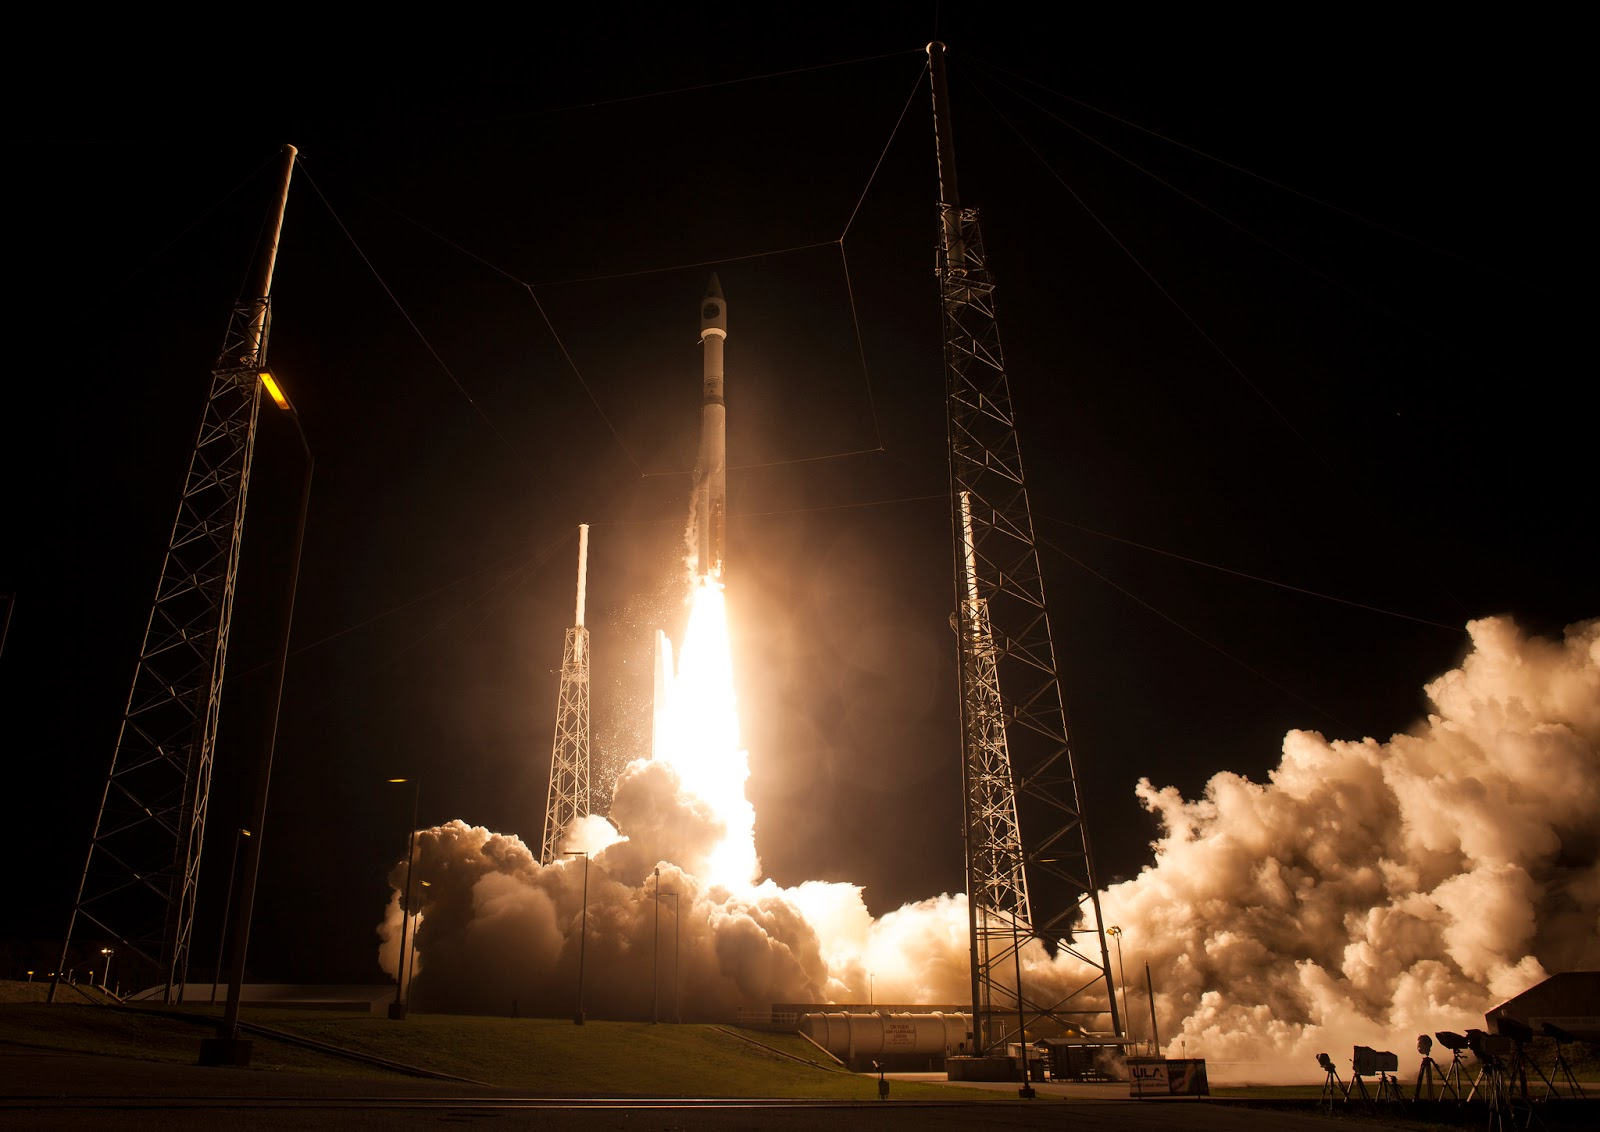 Sights and Sounds from a NASA Rocket Launch